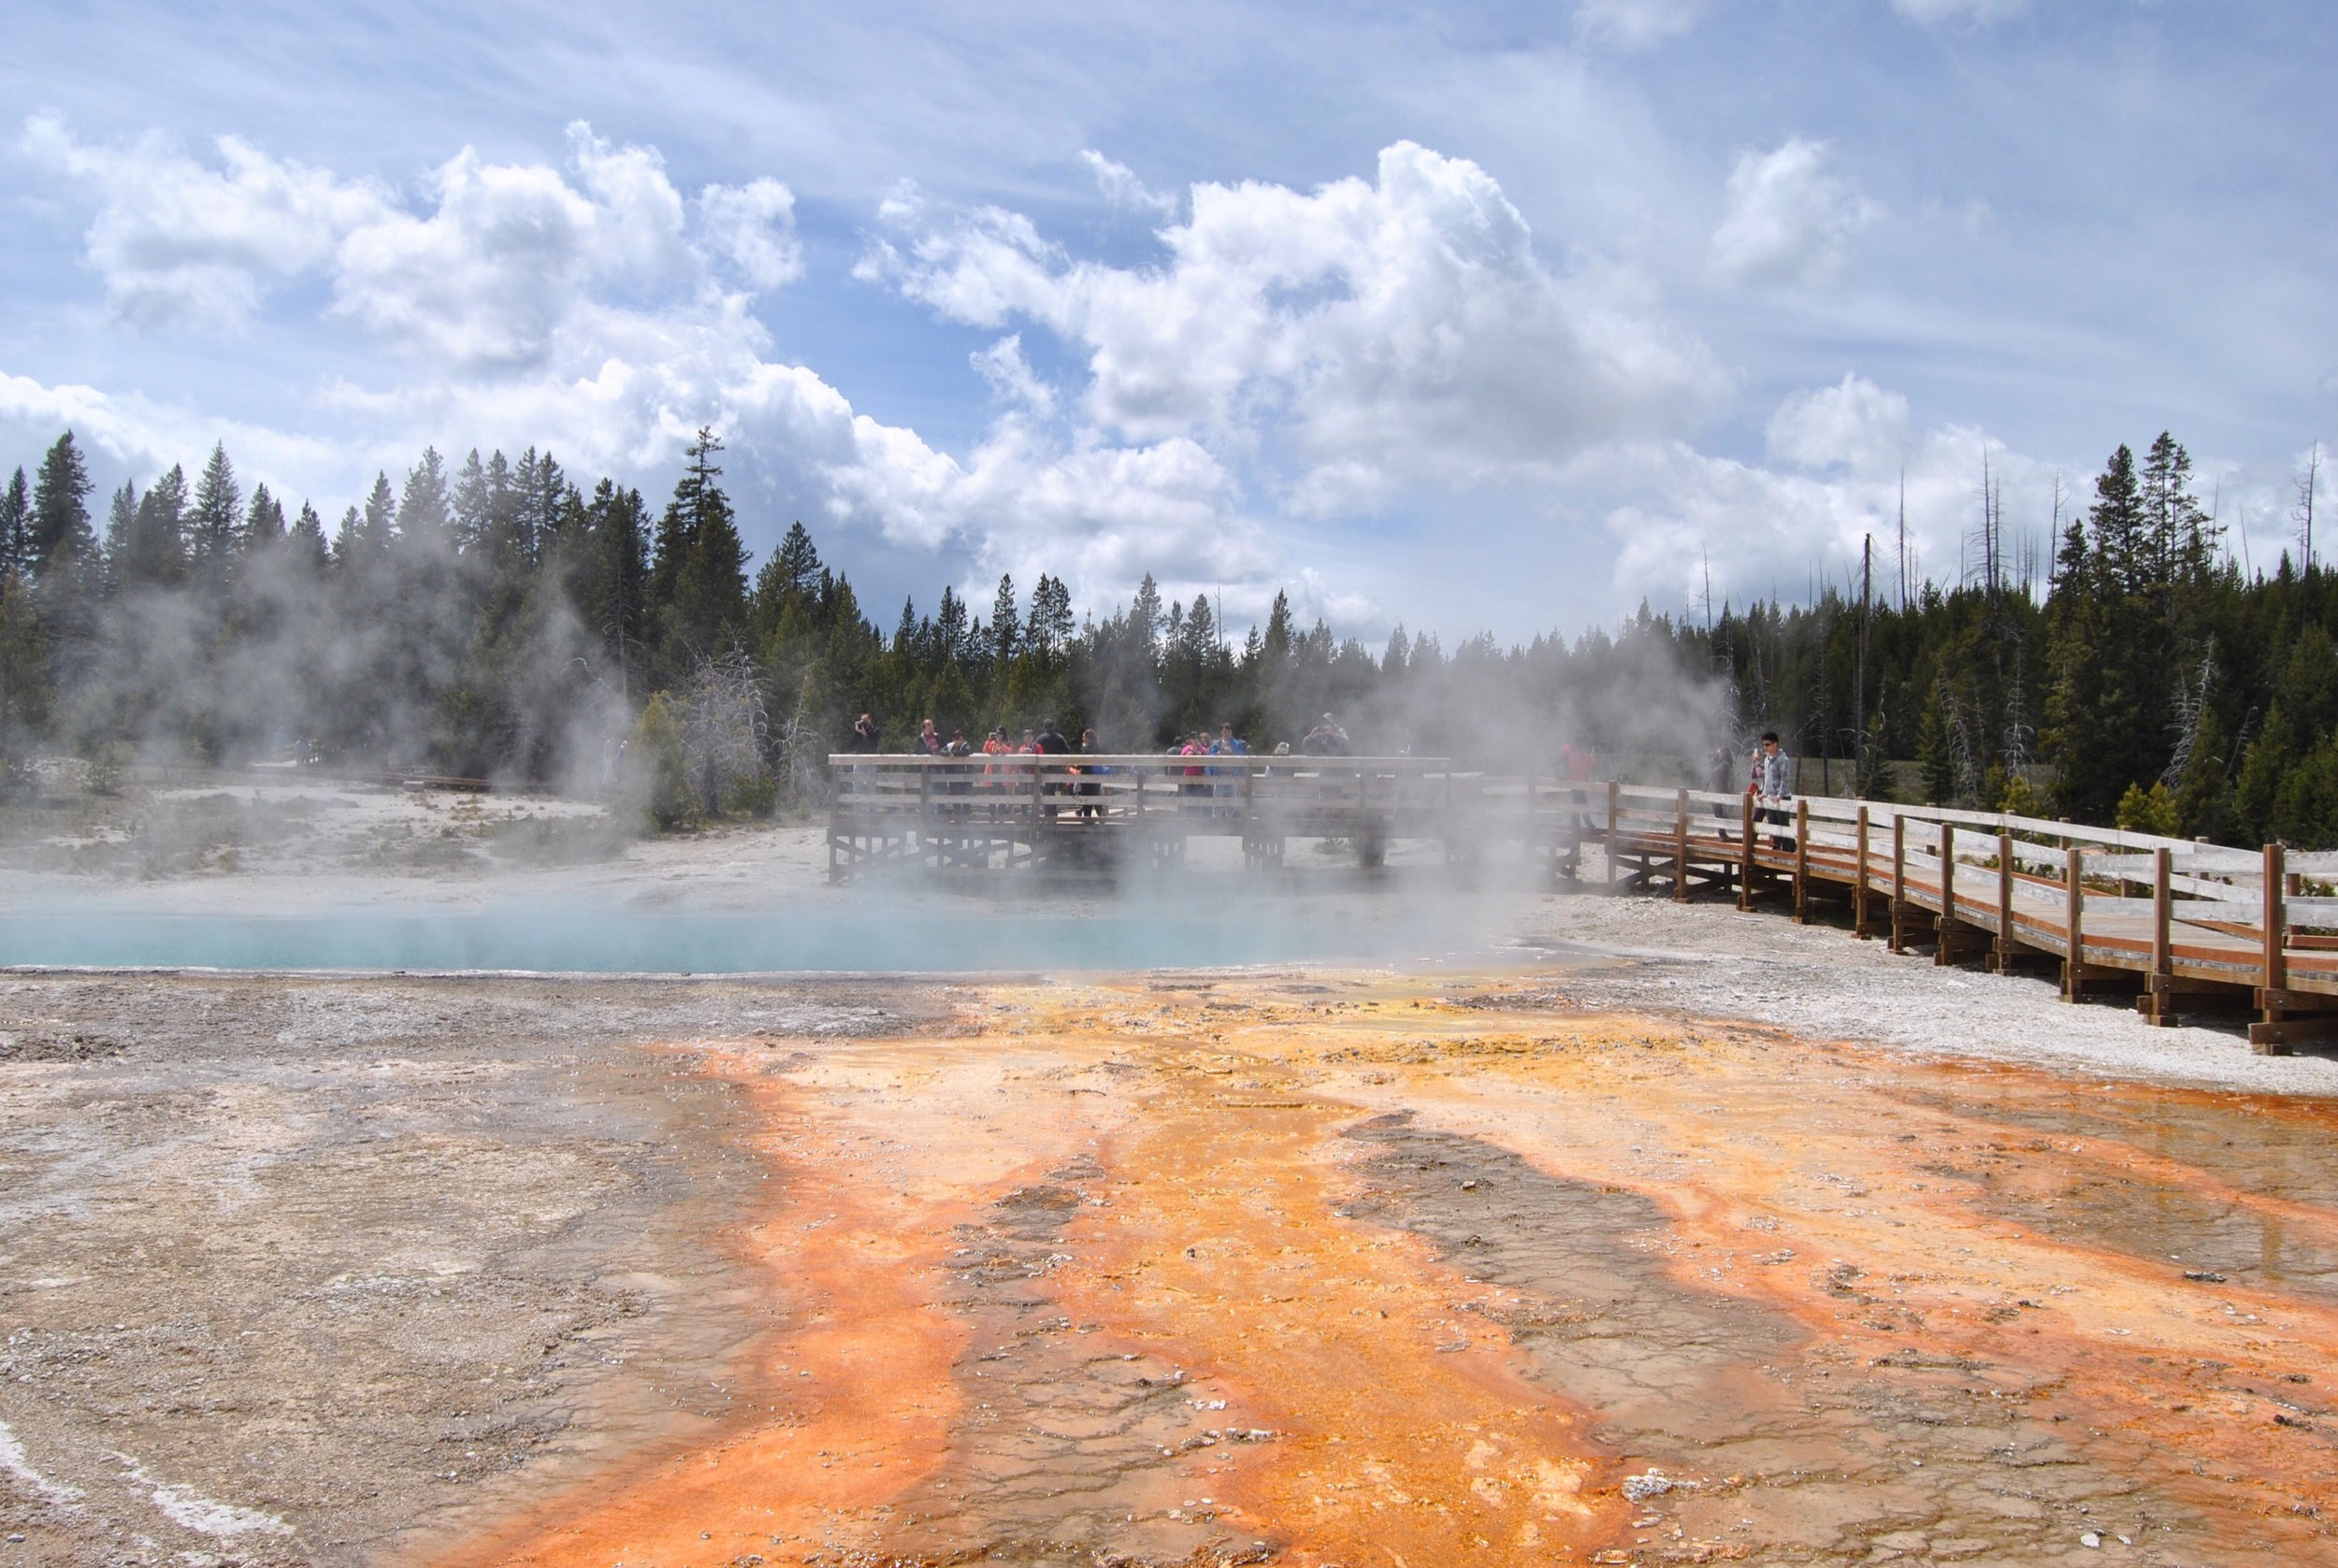 Our next stop was at West Thumb geyser basin. It's one of the smallest, but rather scenically overlooks Yellowstone Lake.